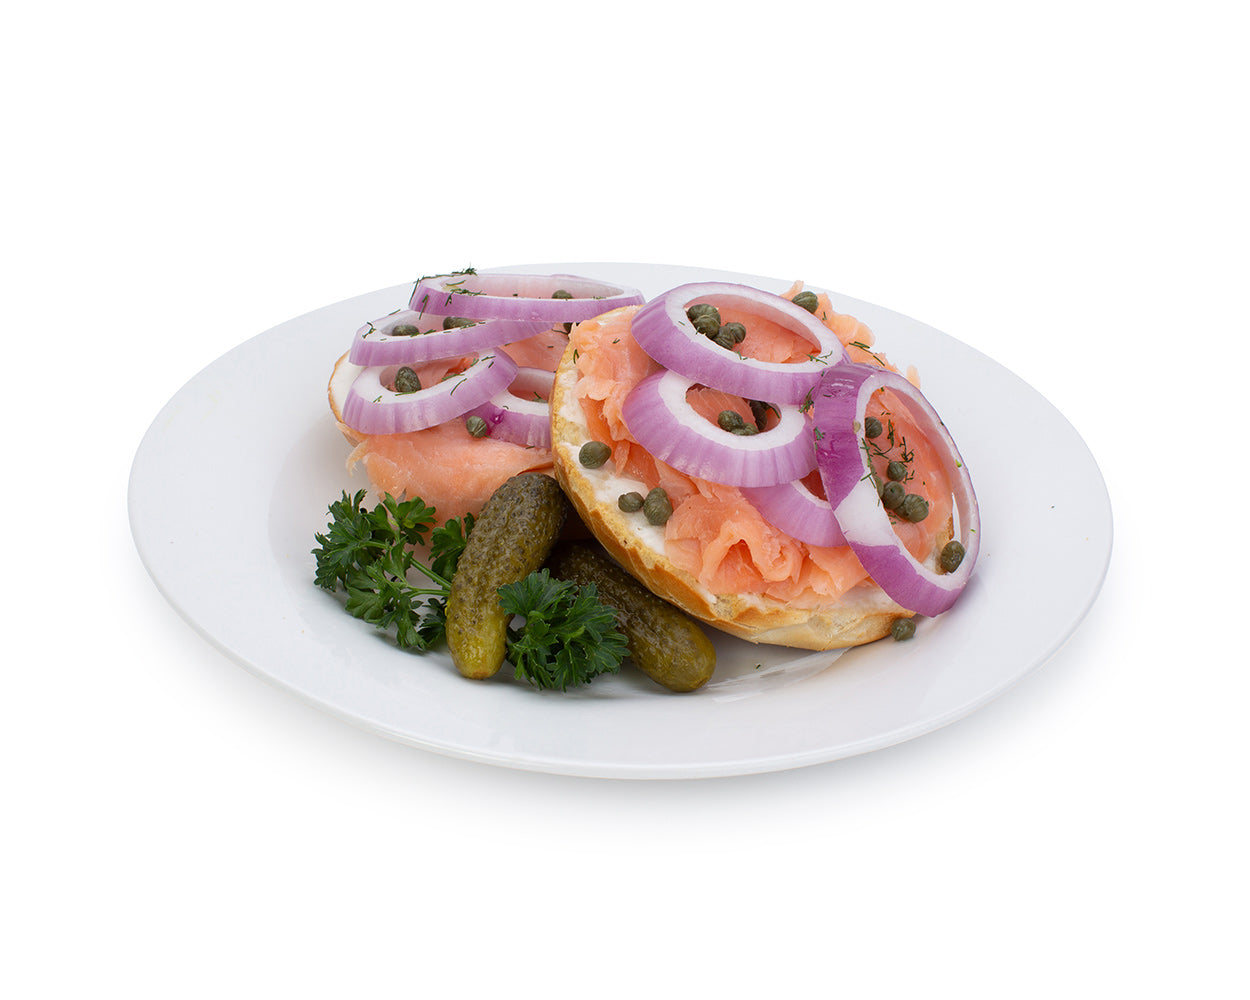 Lox Bagel with